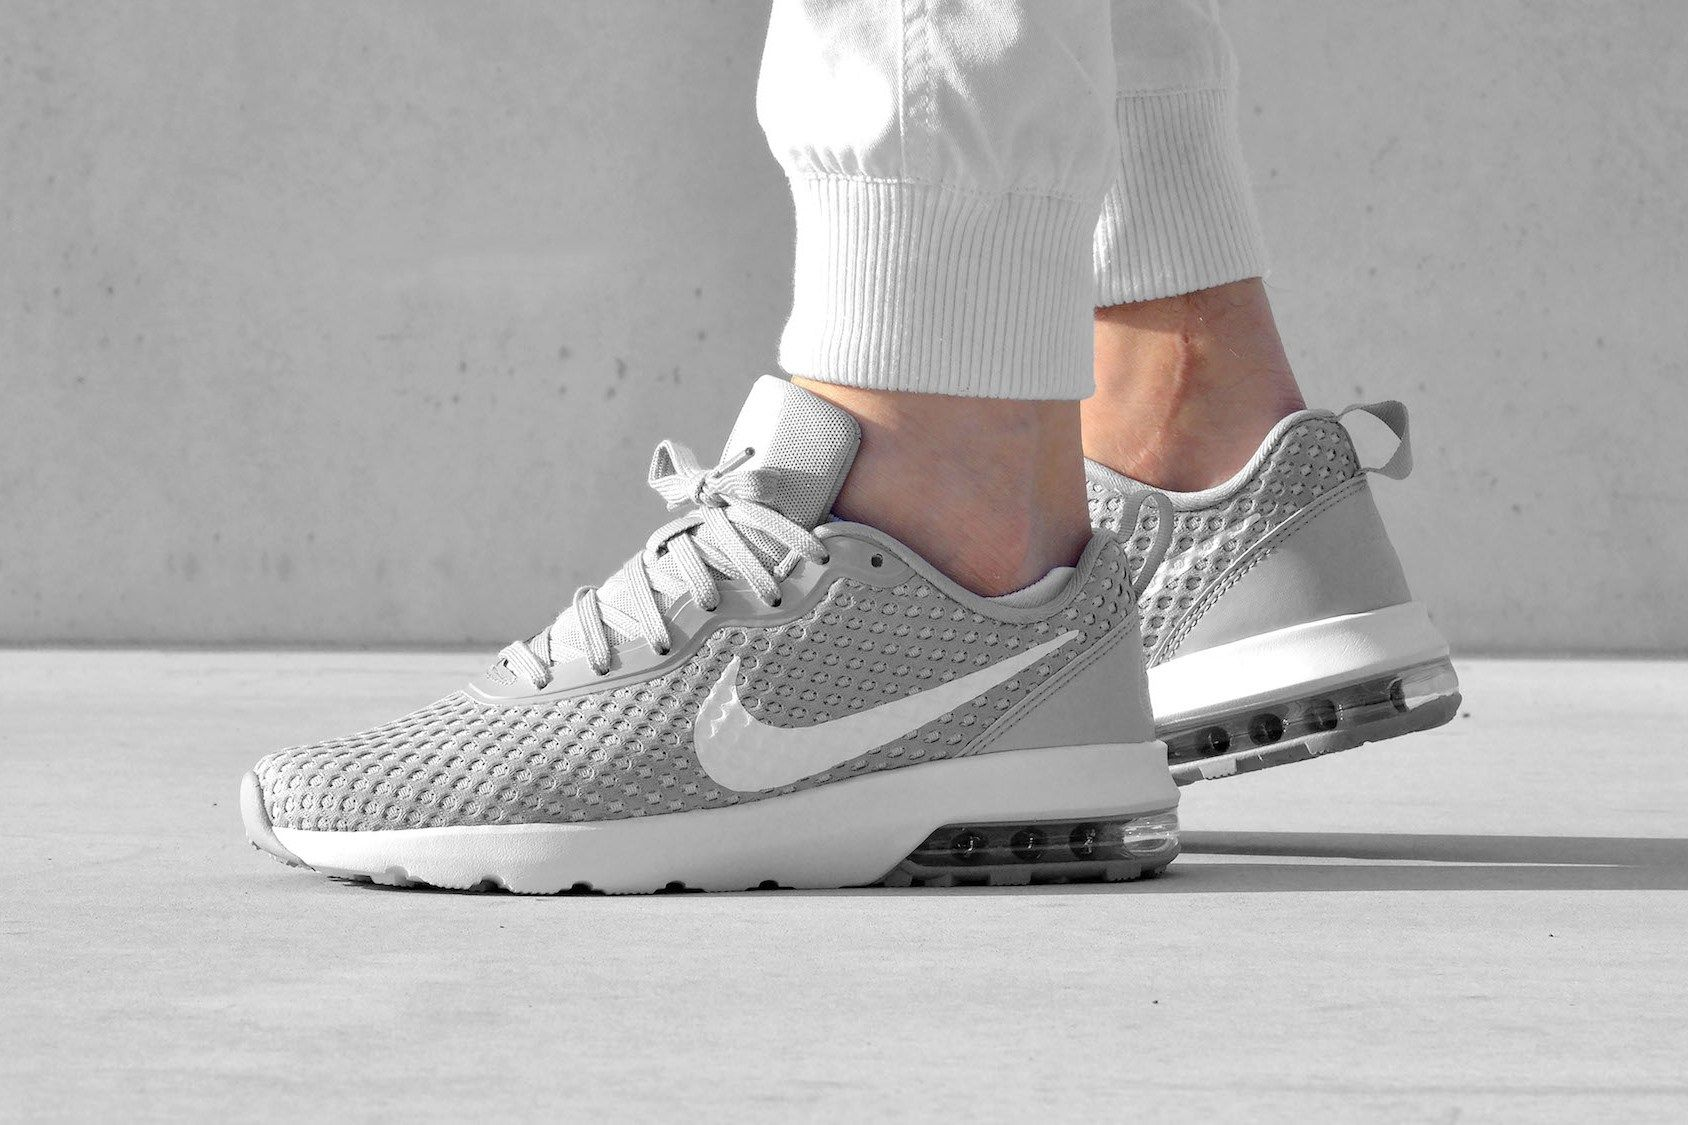 Nike Air Max Turbulence LS